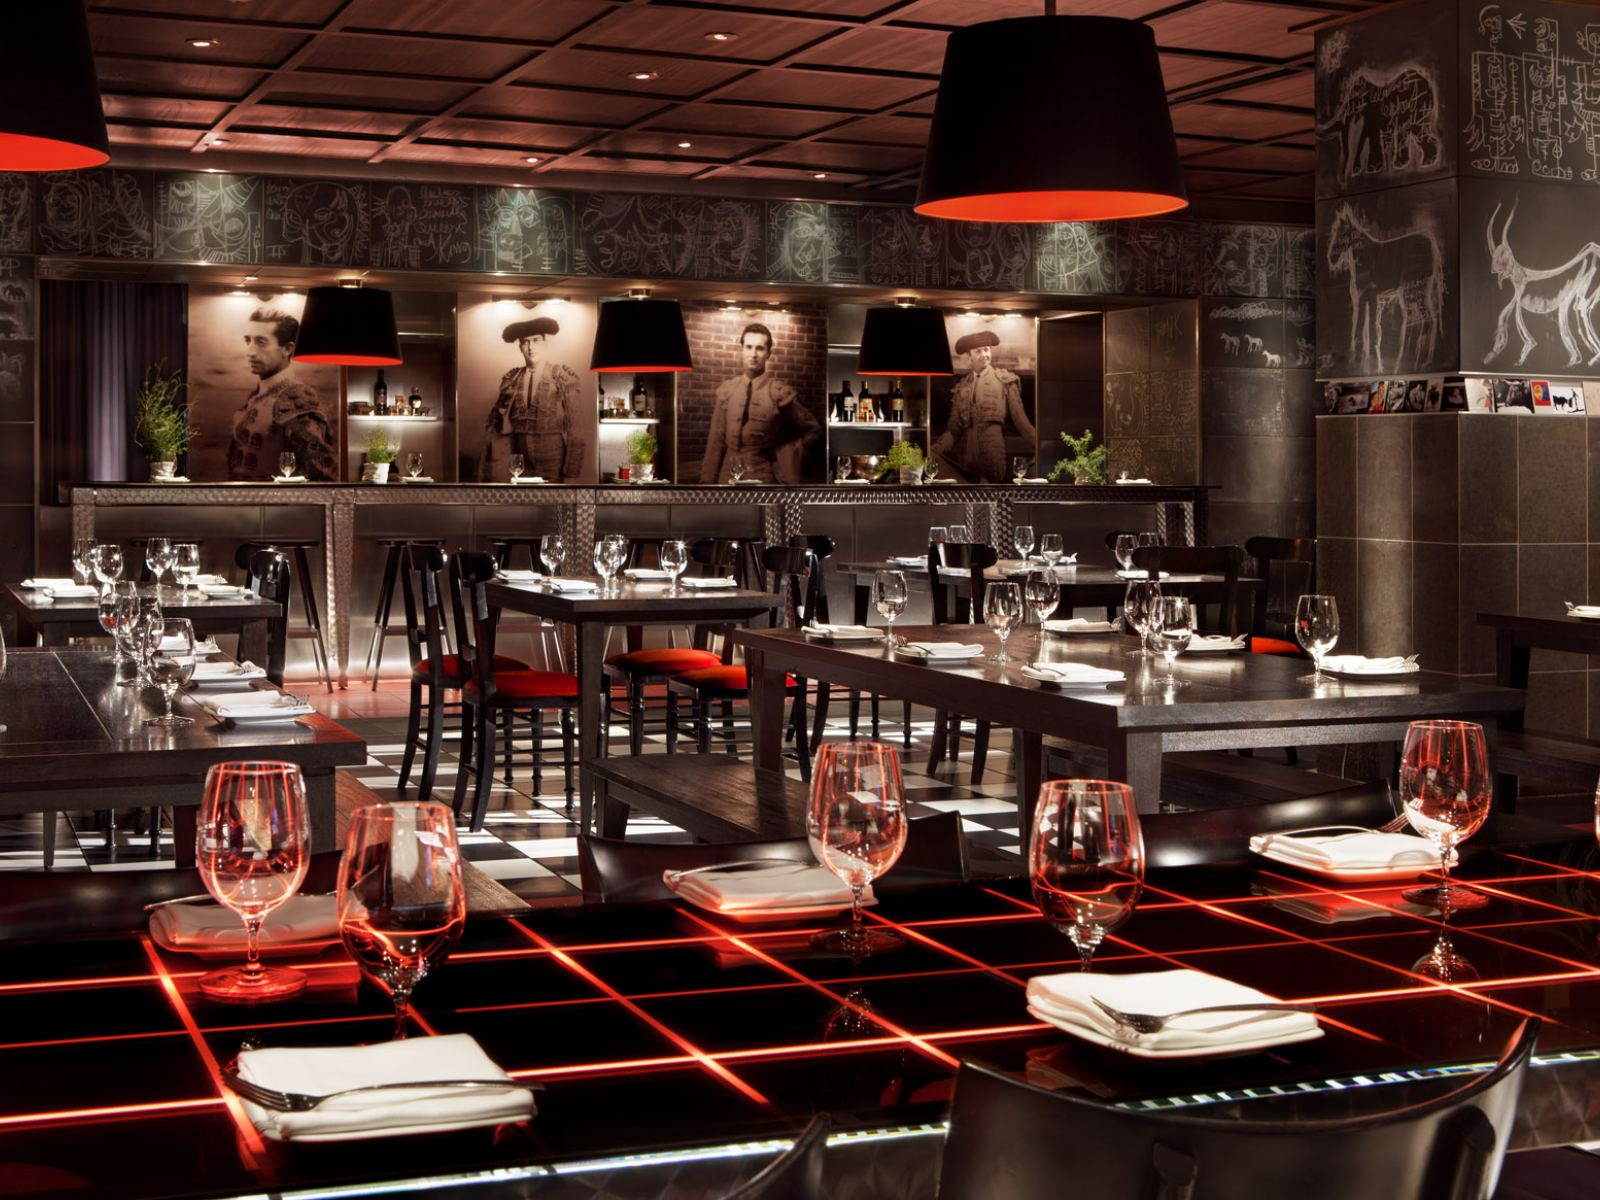 Rojo dining room at The Bazaar by José Andrés in the SLS Beverly Hills